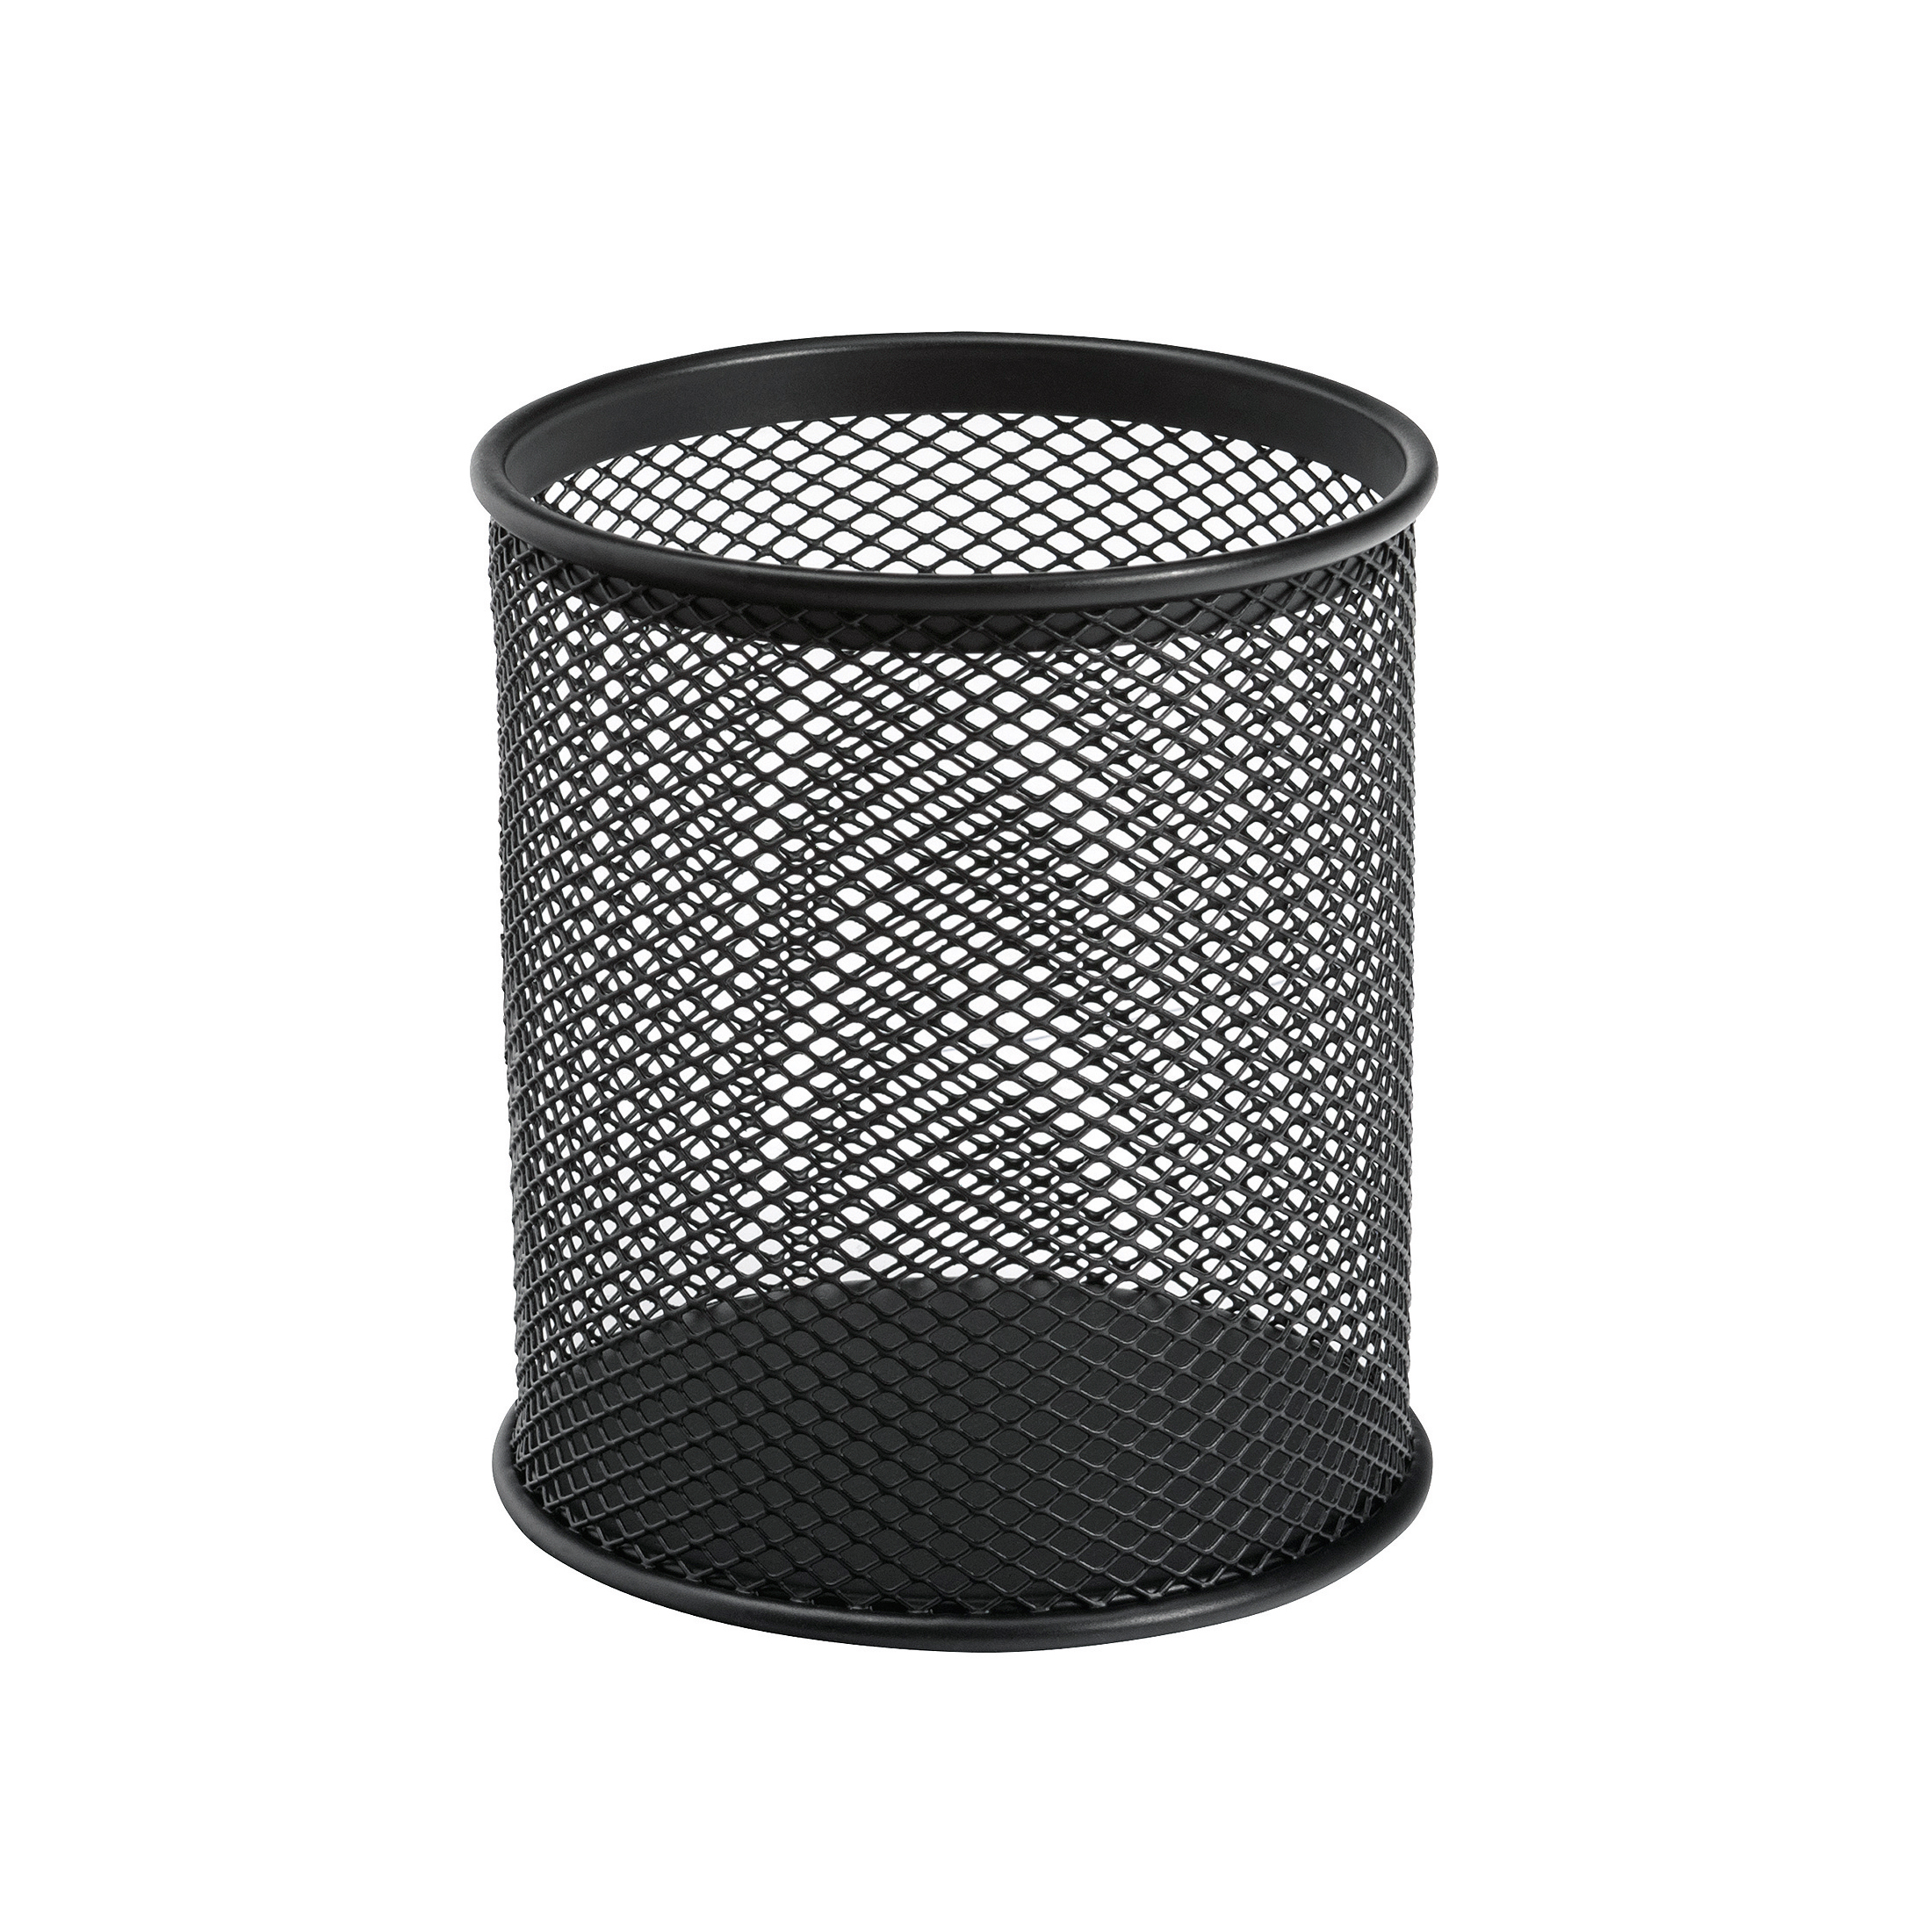 Desk Tidies 5 Star Office Pen Pot Wire Mesh DiaxH: 80x95mm Black